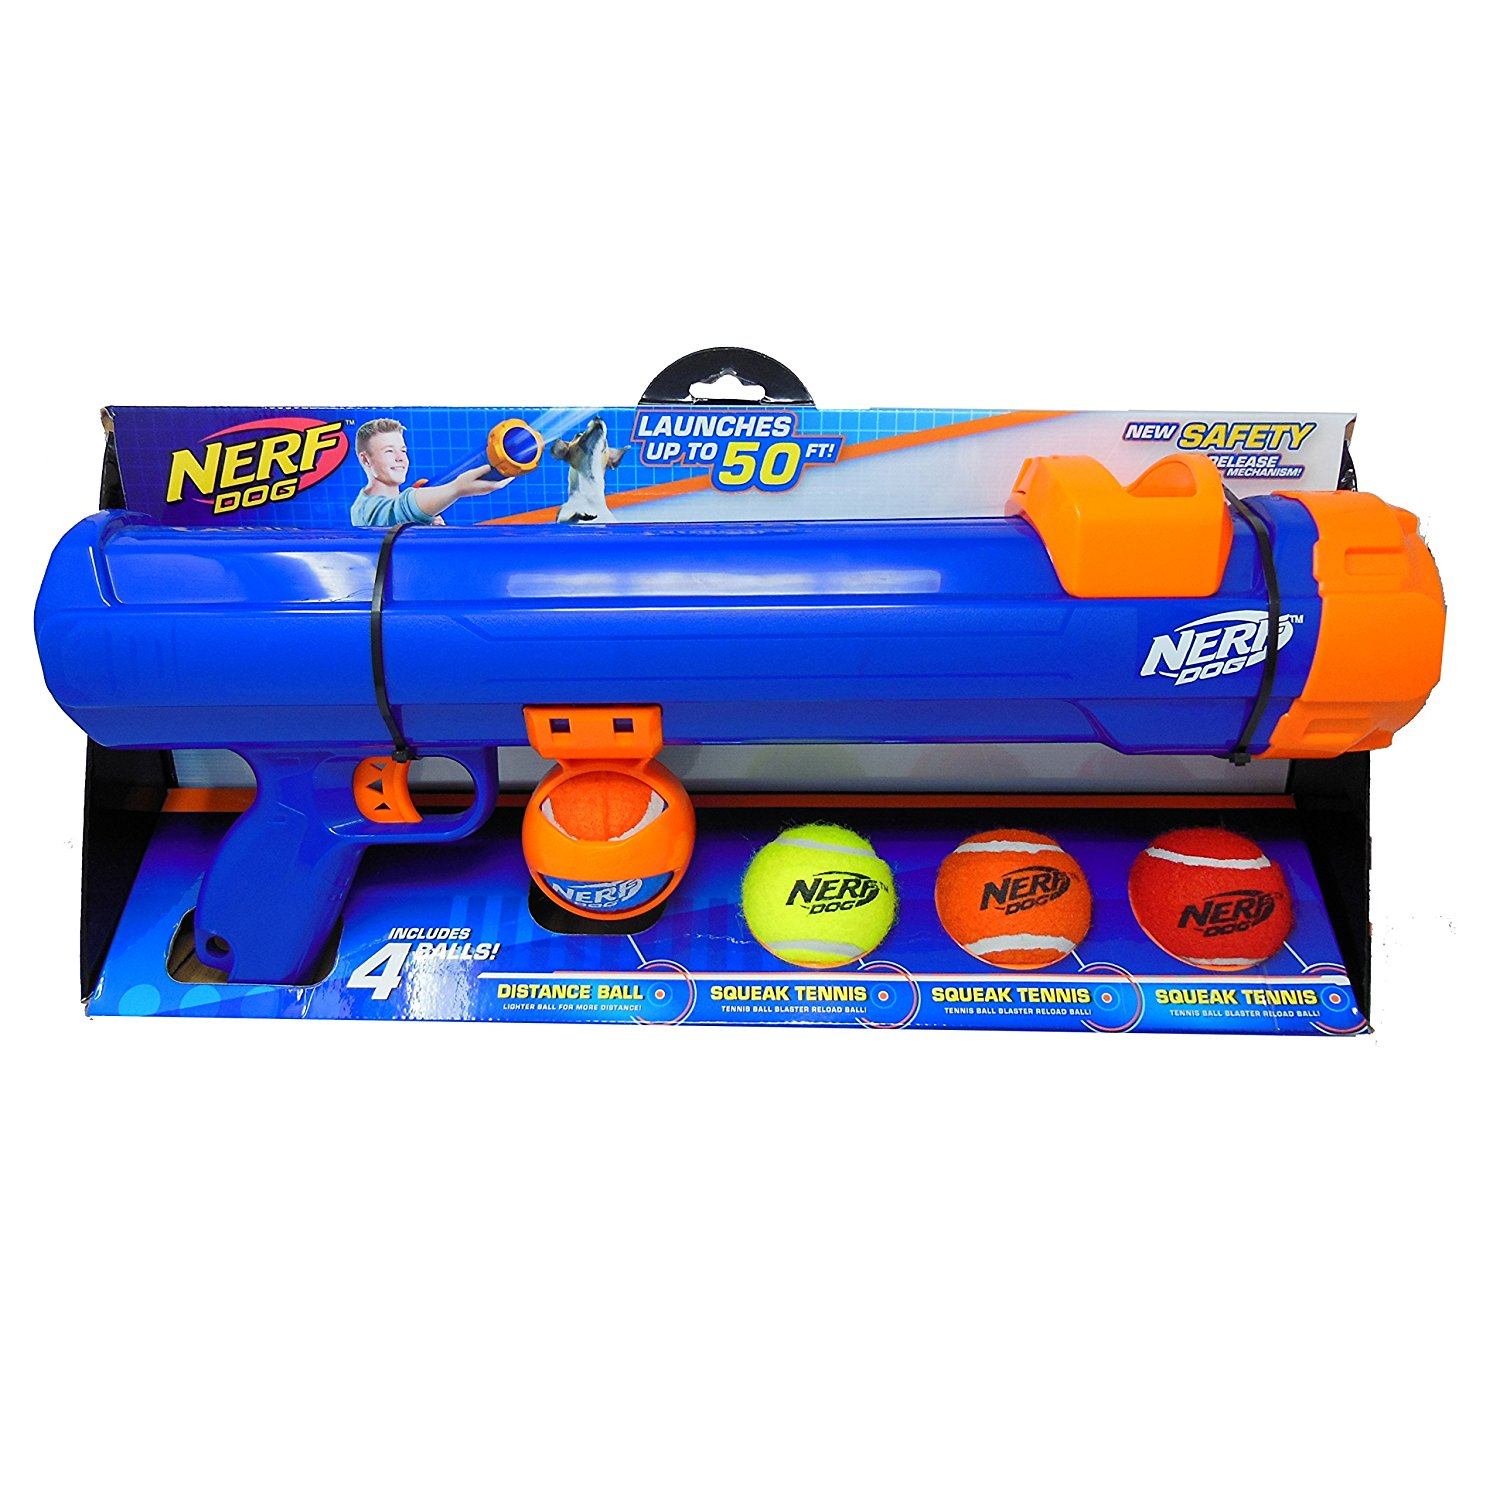 Nerf dog tennis ball blaster is great for service dogs.